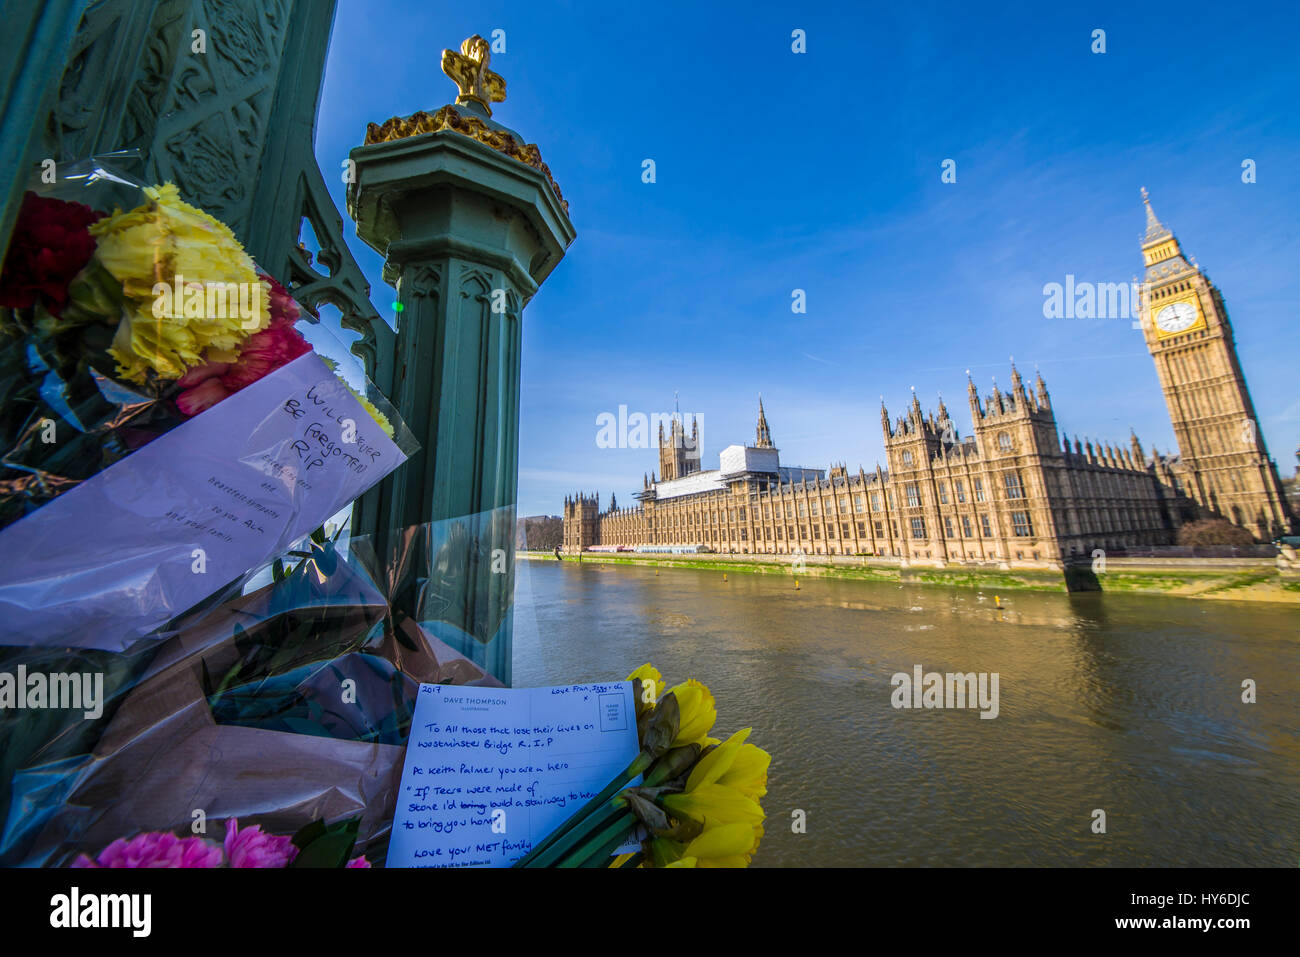 Floral tributes on Westminster Bridge, London, honouring the lives lost to terrorist action on 22 March 2017 here - Stock Image